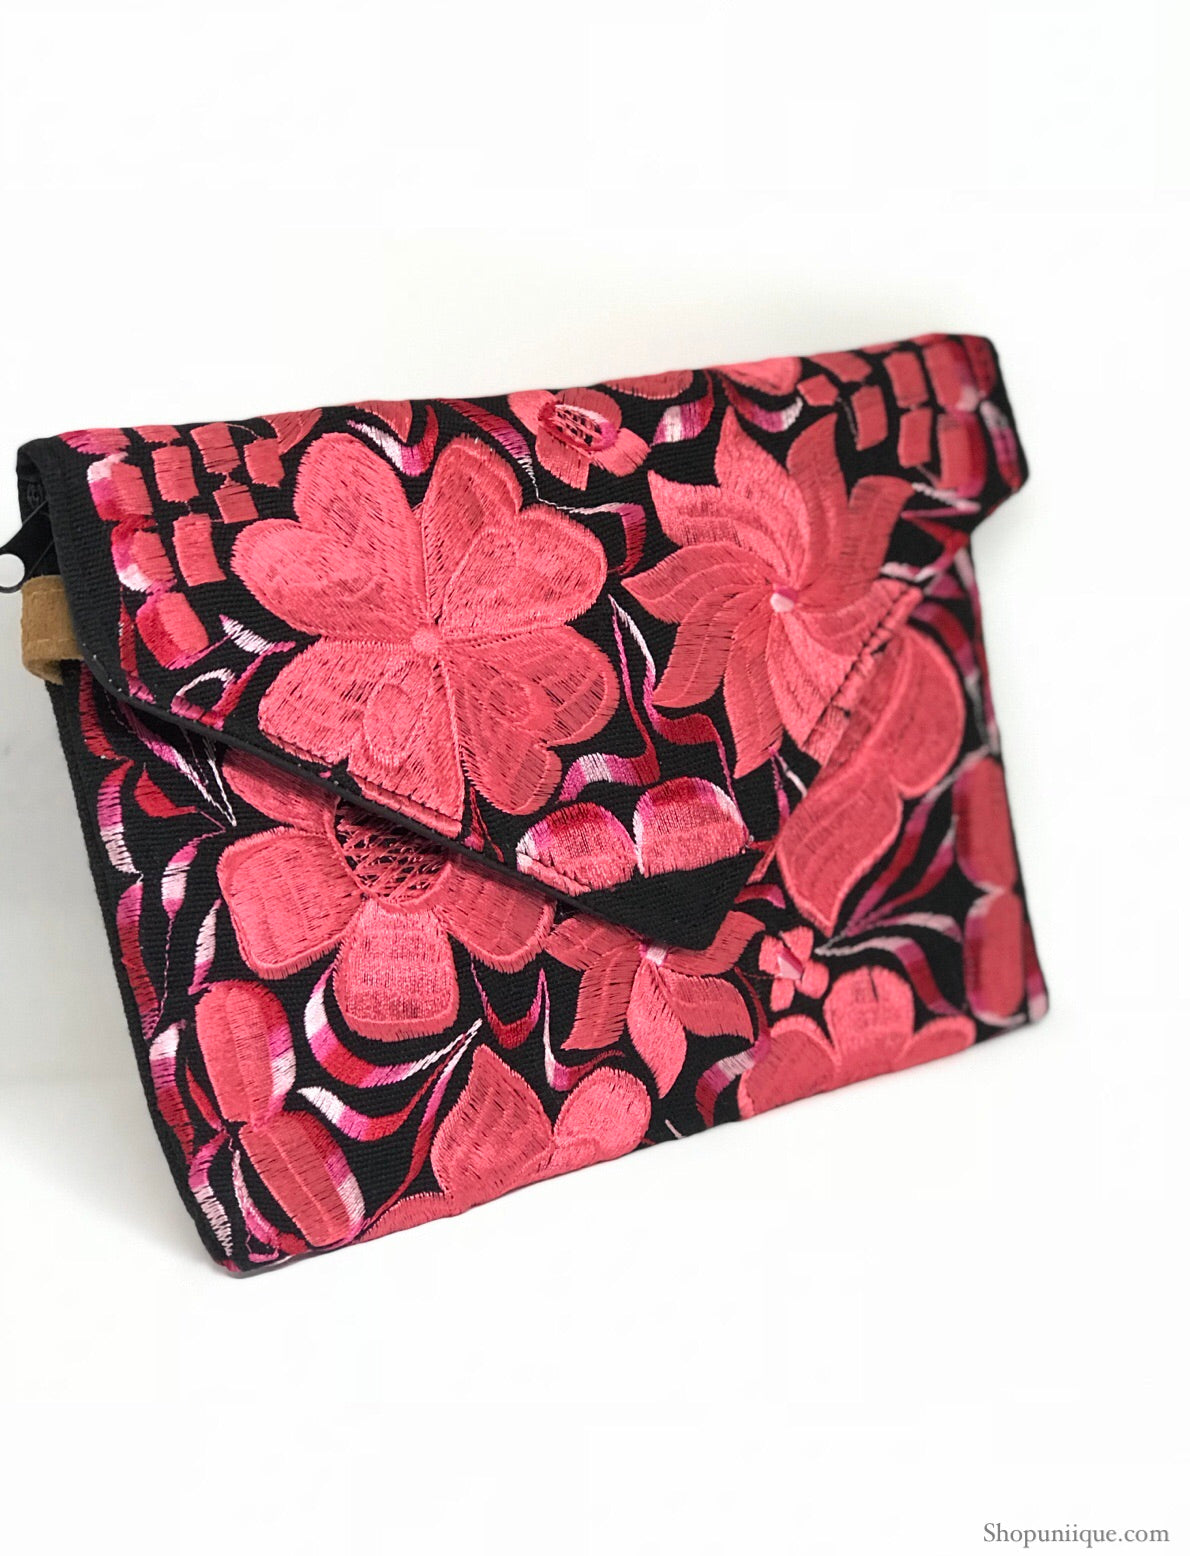 Black and Pink Cross Body Clutch